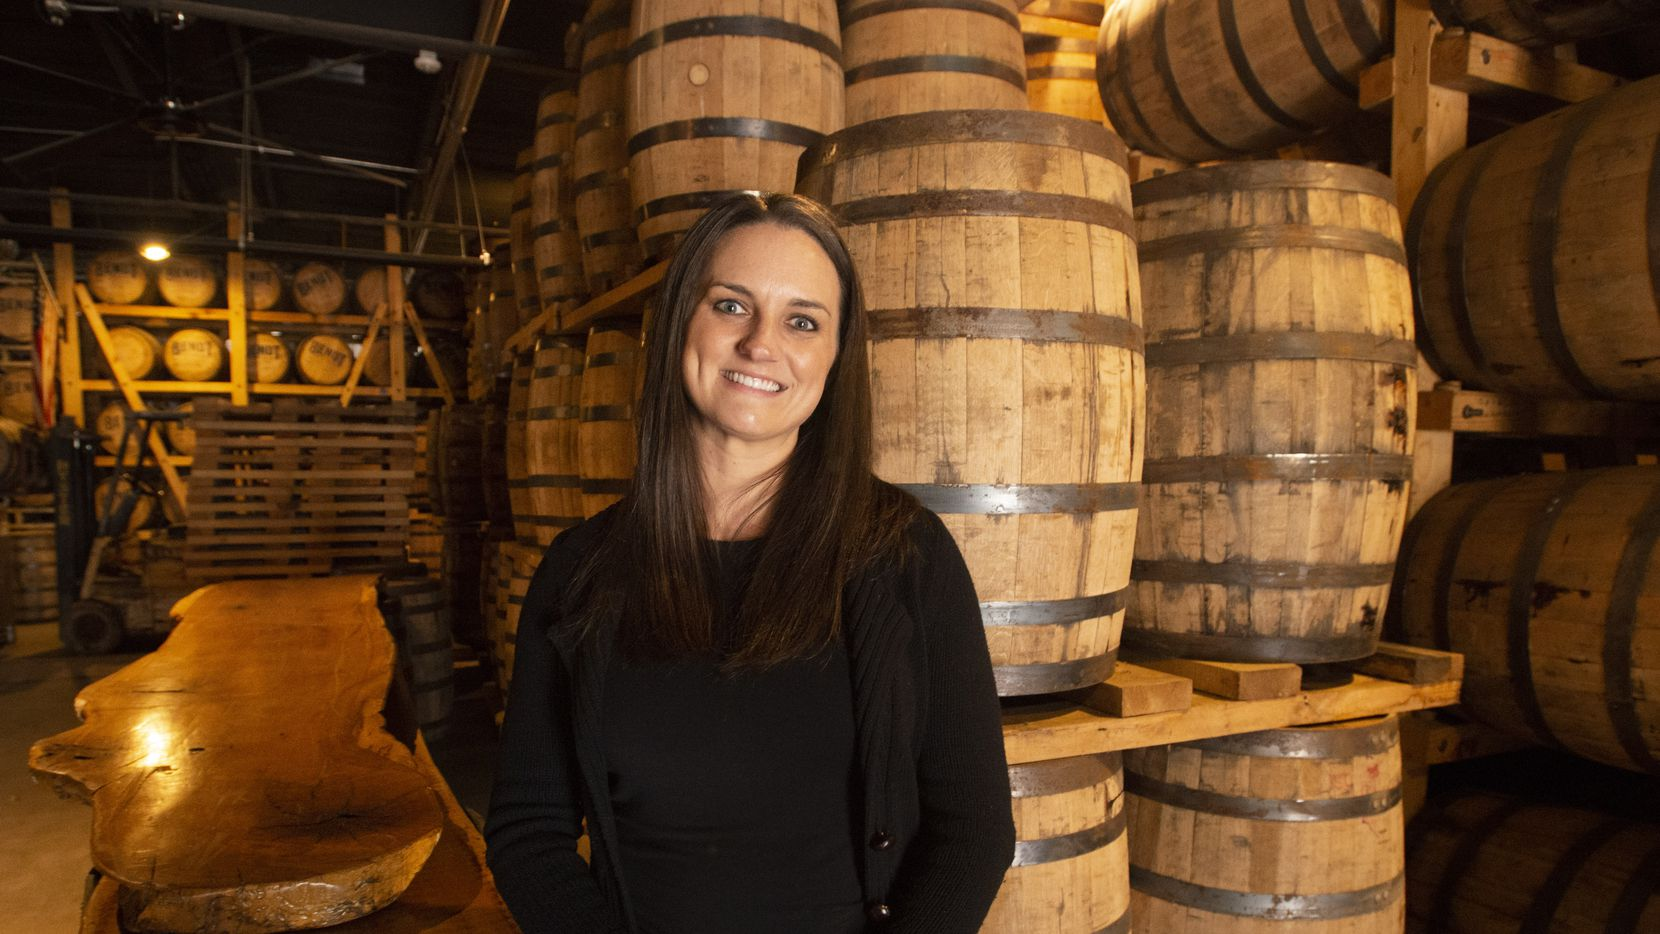 Natasha DeHart, founder and owner of Bendt Distilling Co. in the barrel room on Nov. 13, 2019 in Lewisville, Texas. (Robert W. Hart/Special Contributor)